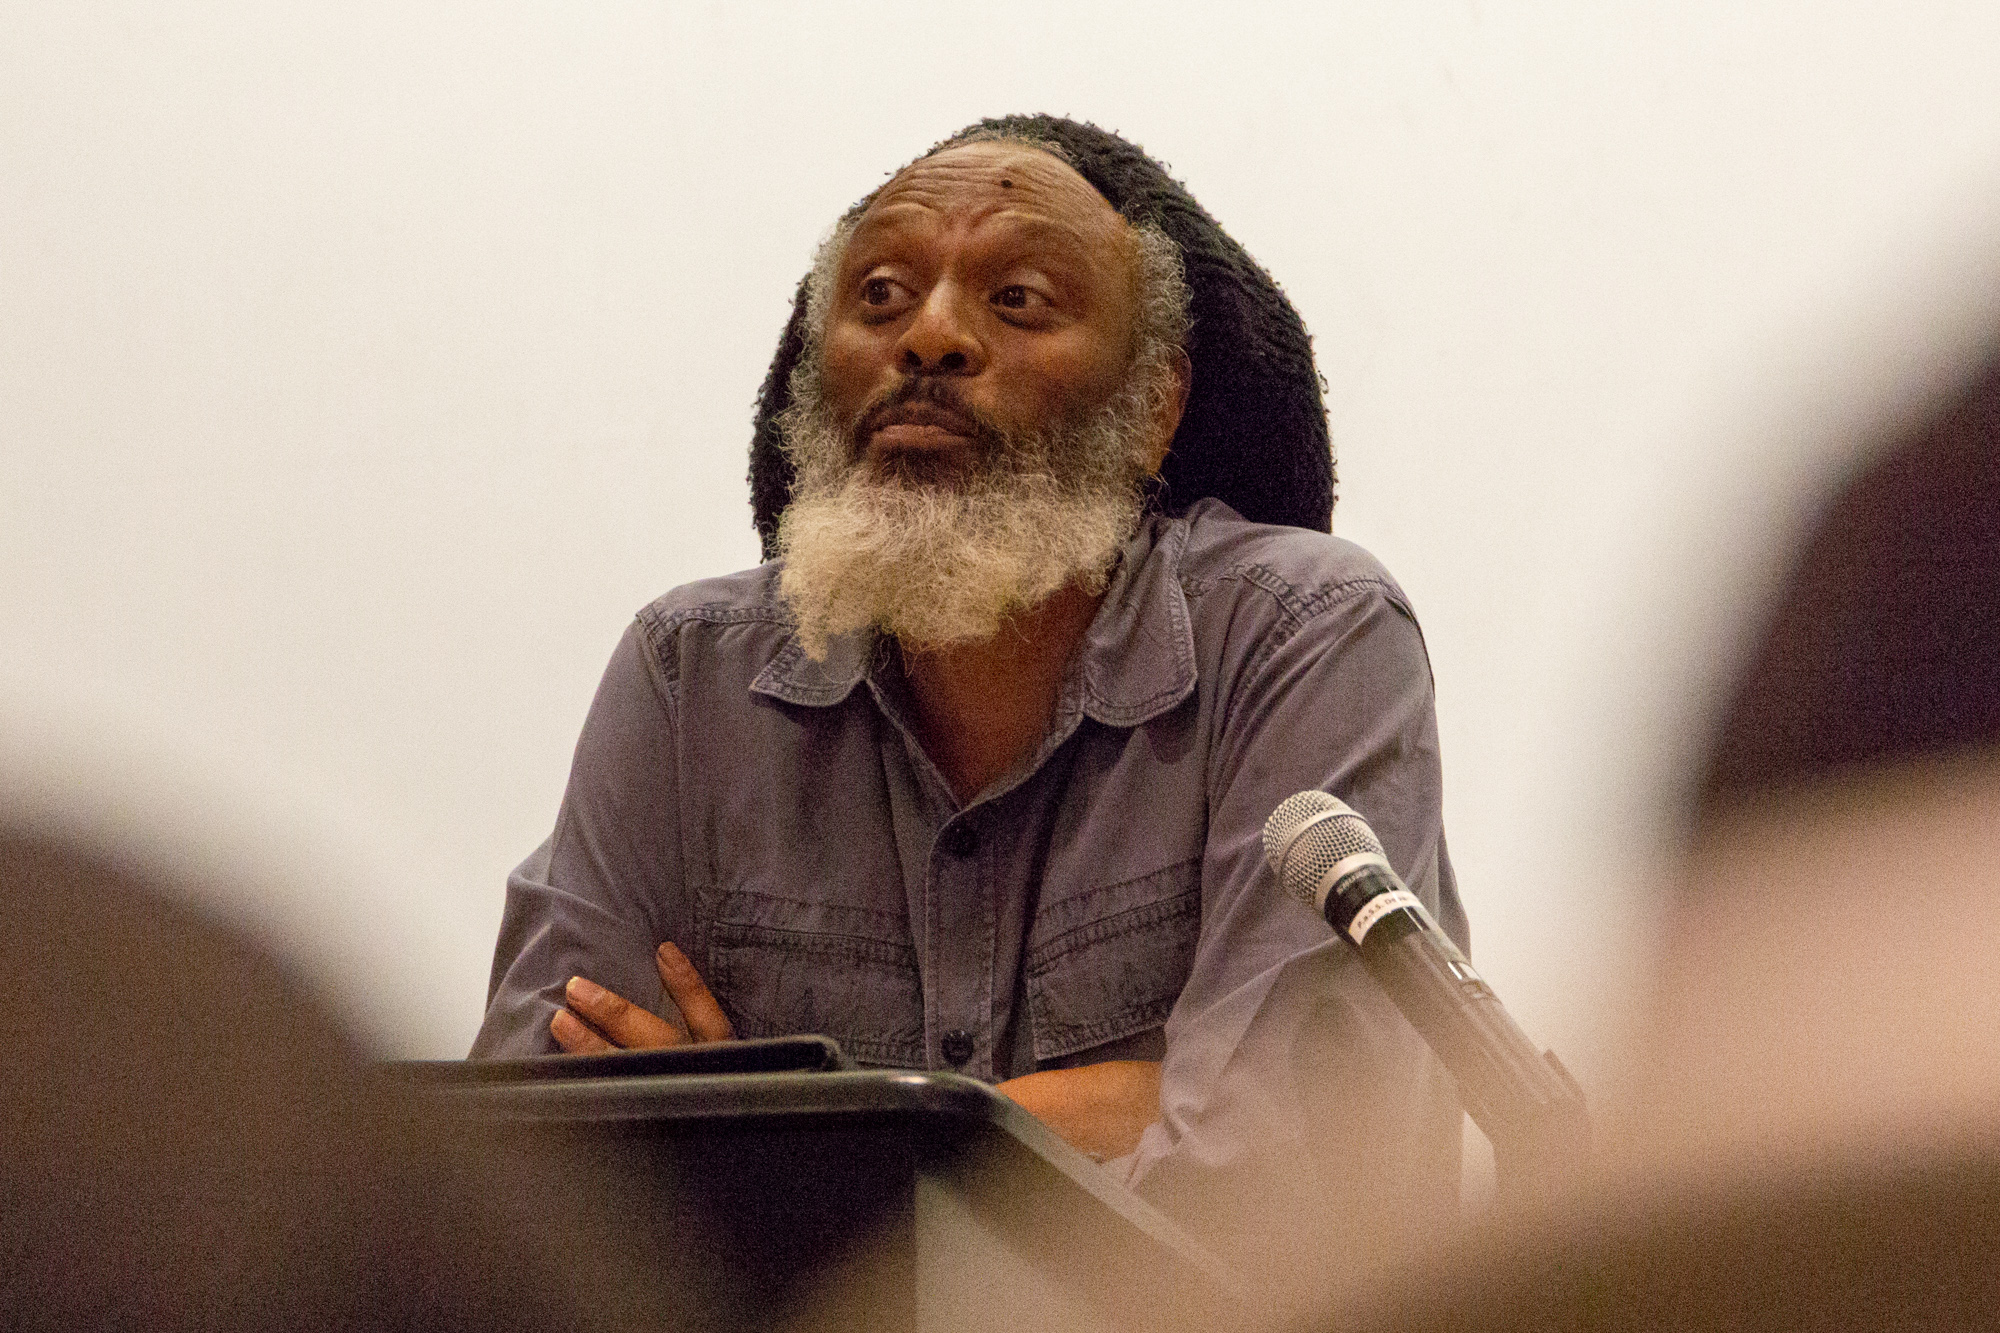 """Poet and Professor of English Wilfred Doucet reads from his work at the """"Modern Poetic Permutations"""" event held at Santa Monica College, Santa Monica, California on Thursday April 19 2018. on Thursday April 19 2018. (Ruth Iorio/ Corsair Photo)"""